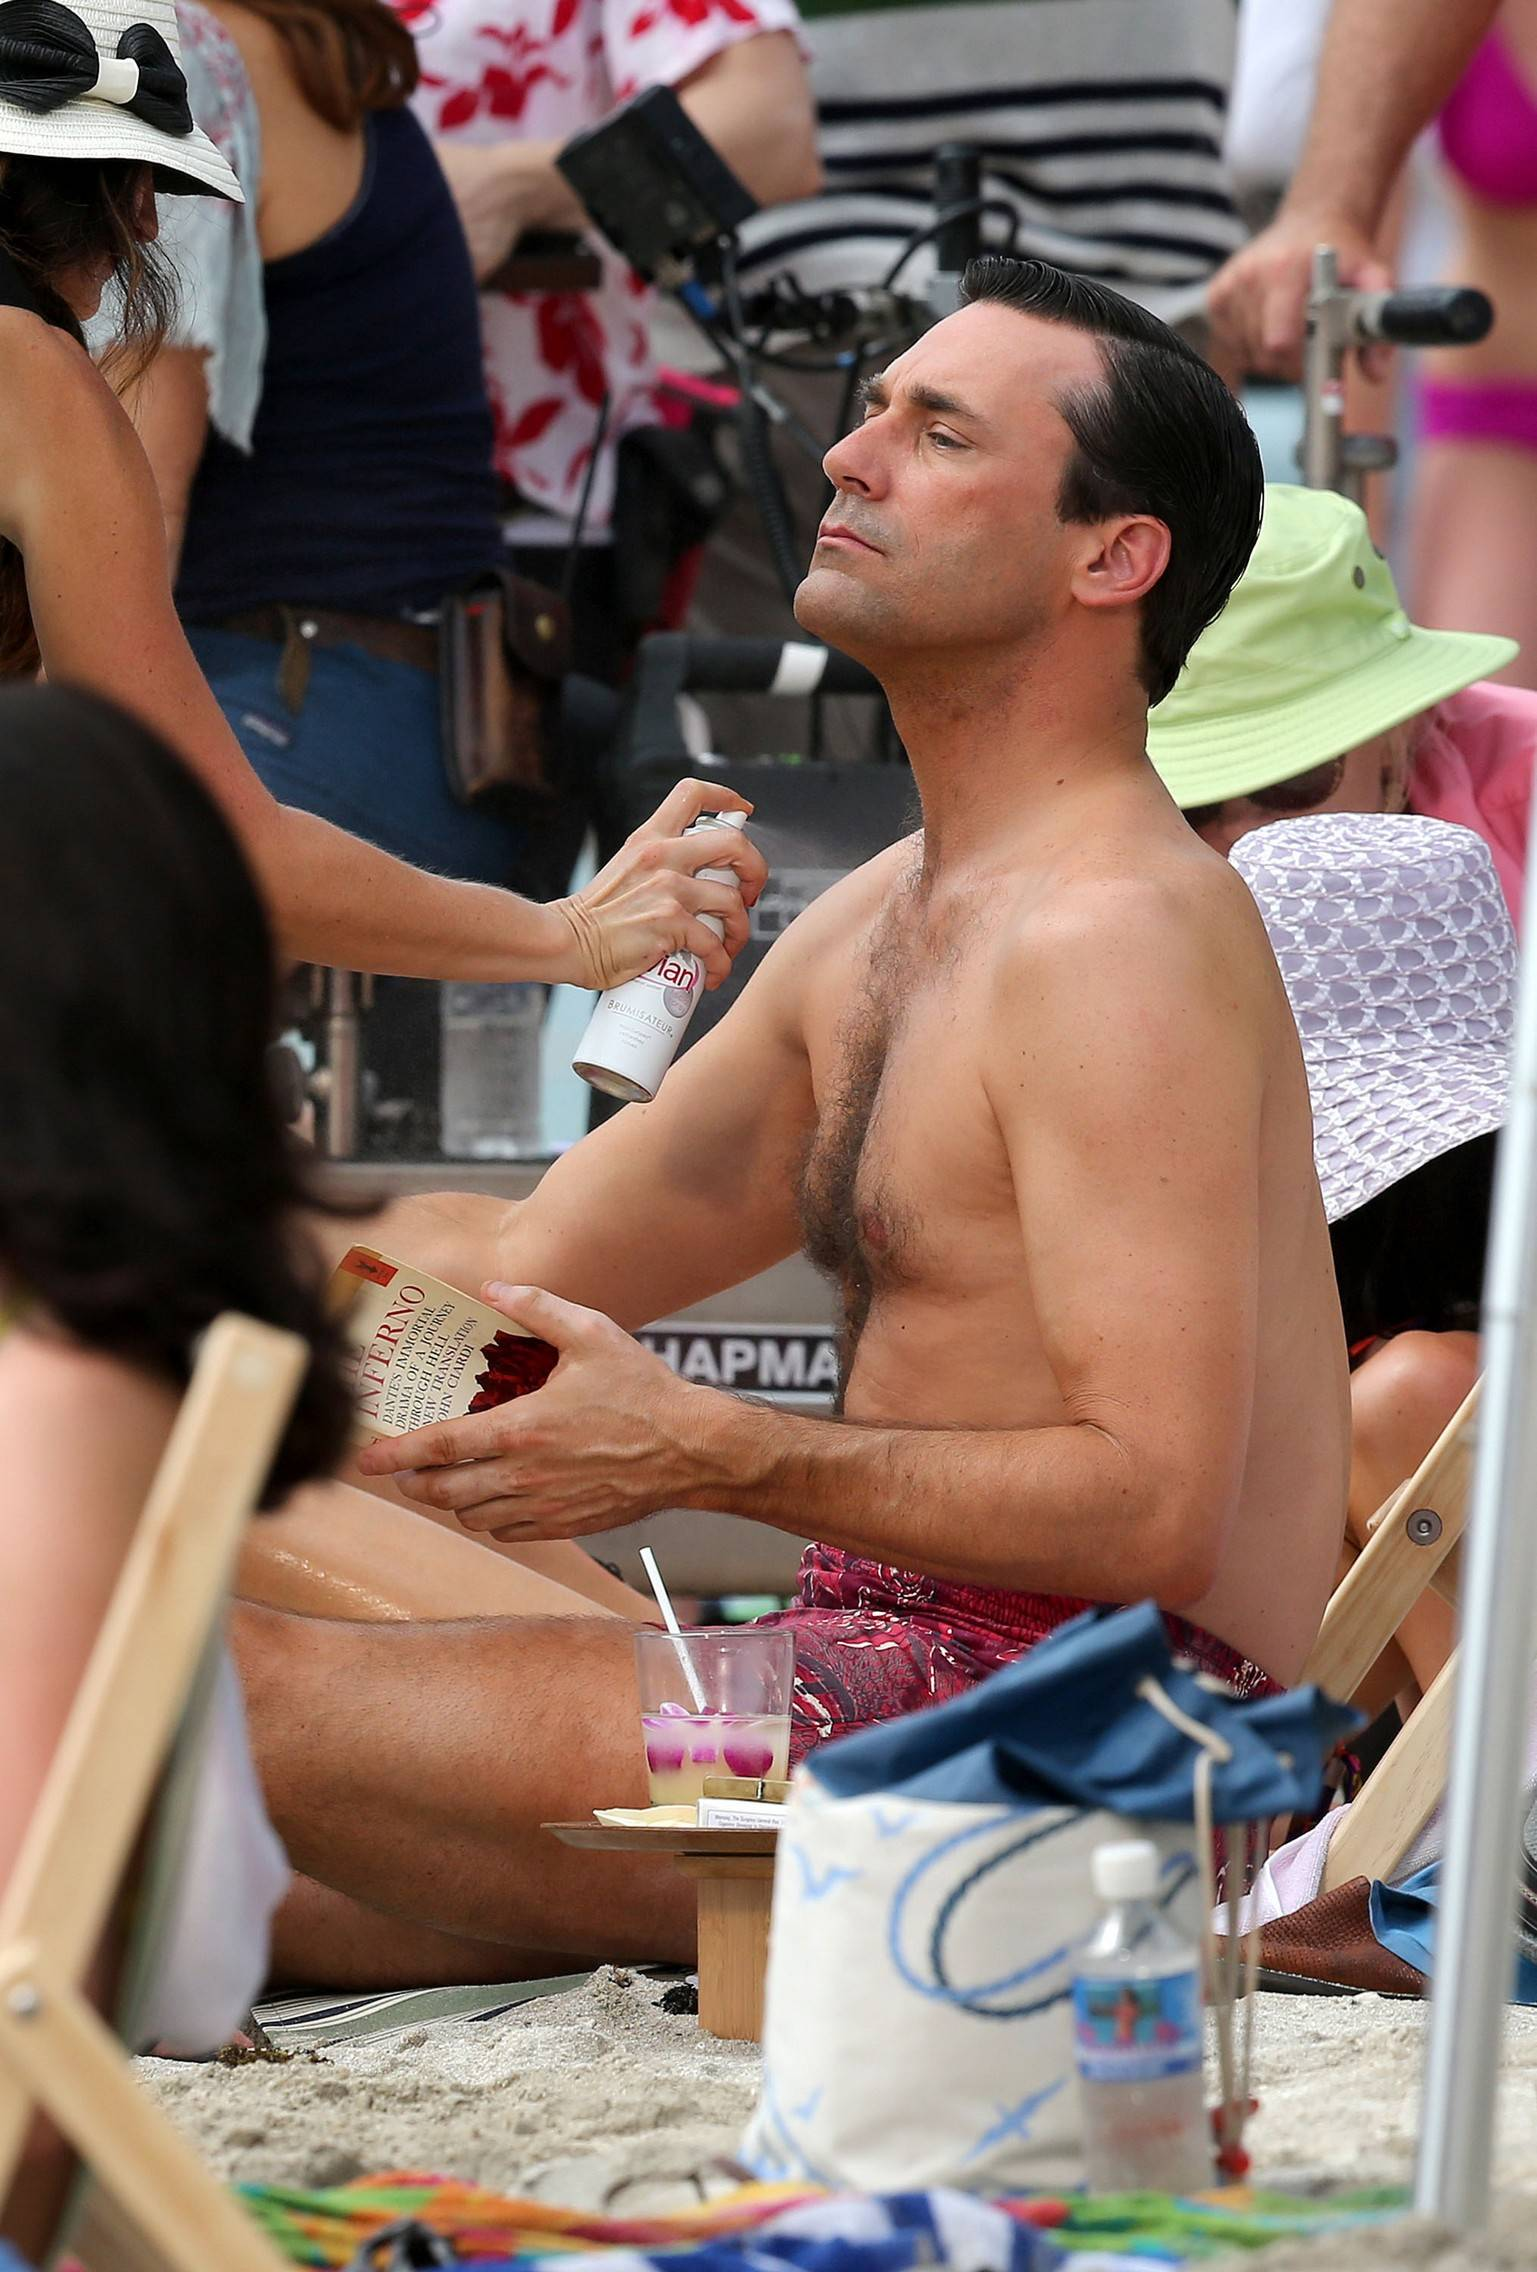 Jon Hamm In A Swimsuit Shooting Scenes For Mad Men -9072